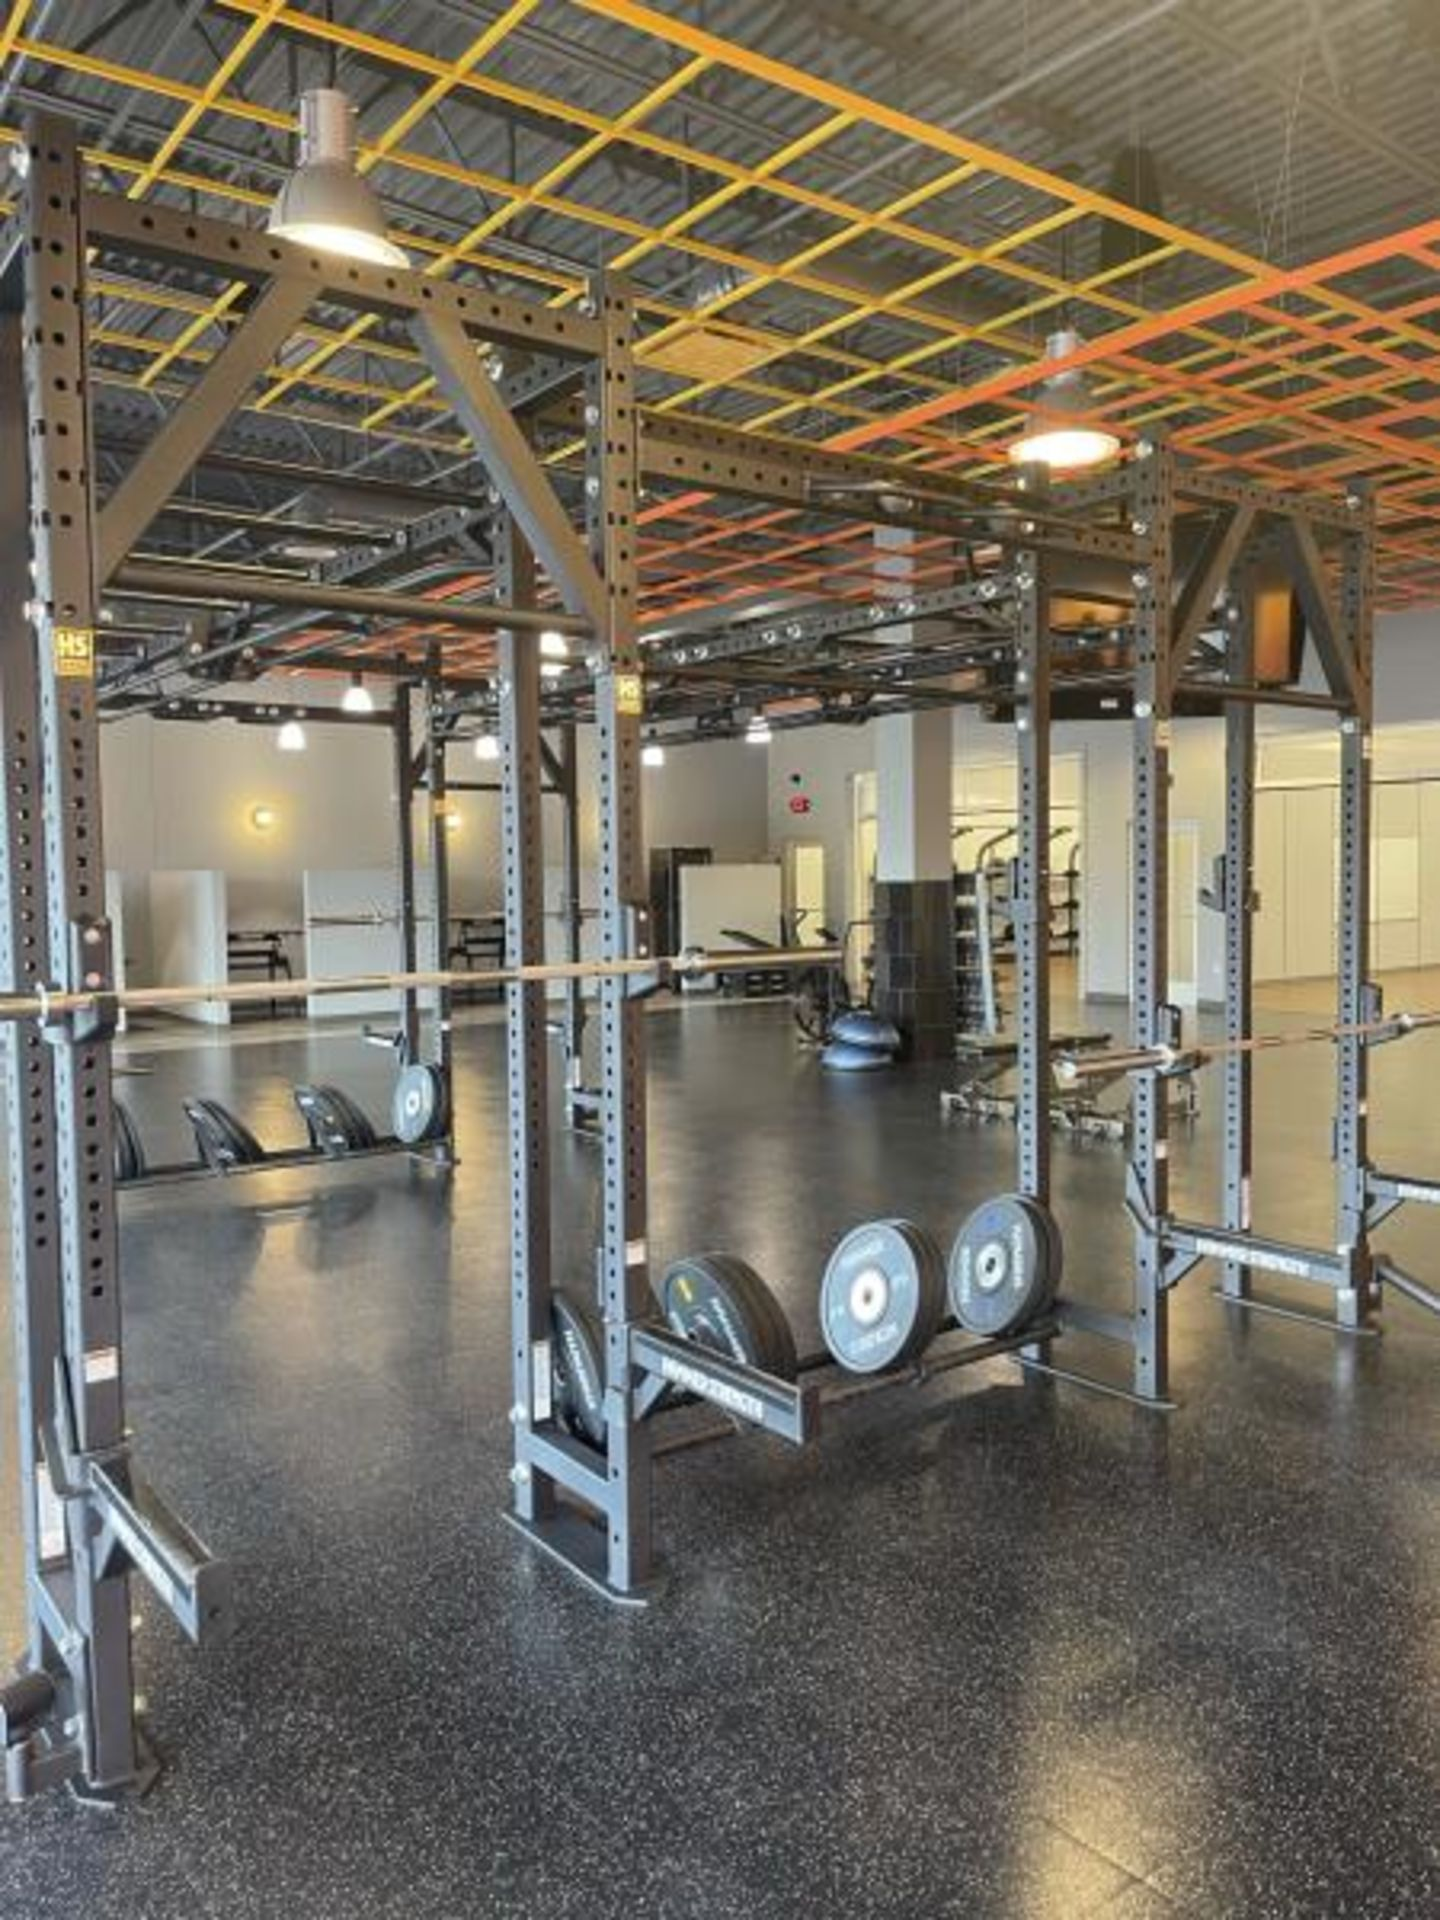 Hammer Strength Multi Station Cage with Hammer Strength Weighted Plates, 4 Bars - Image 6 of 11